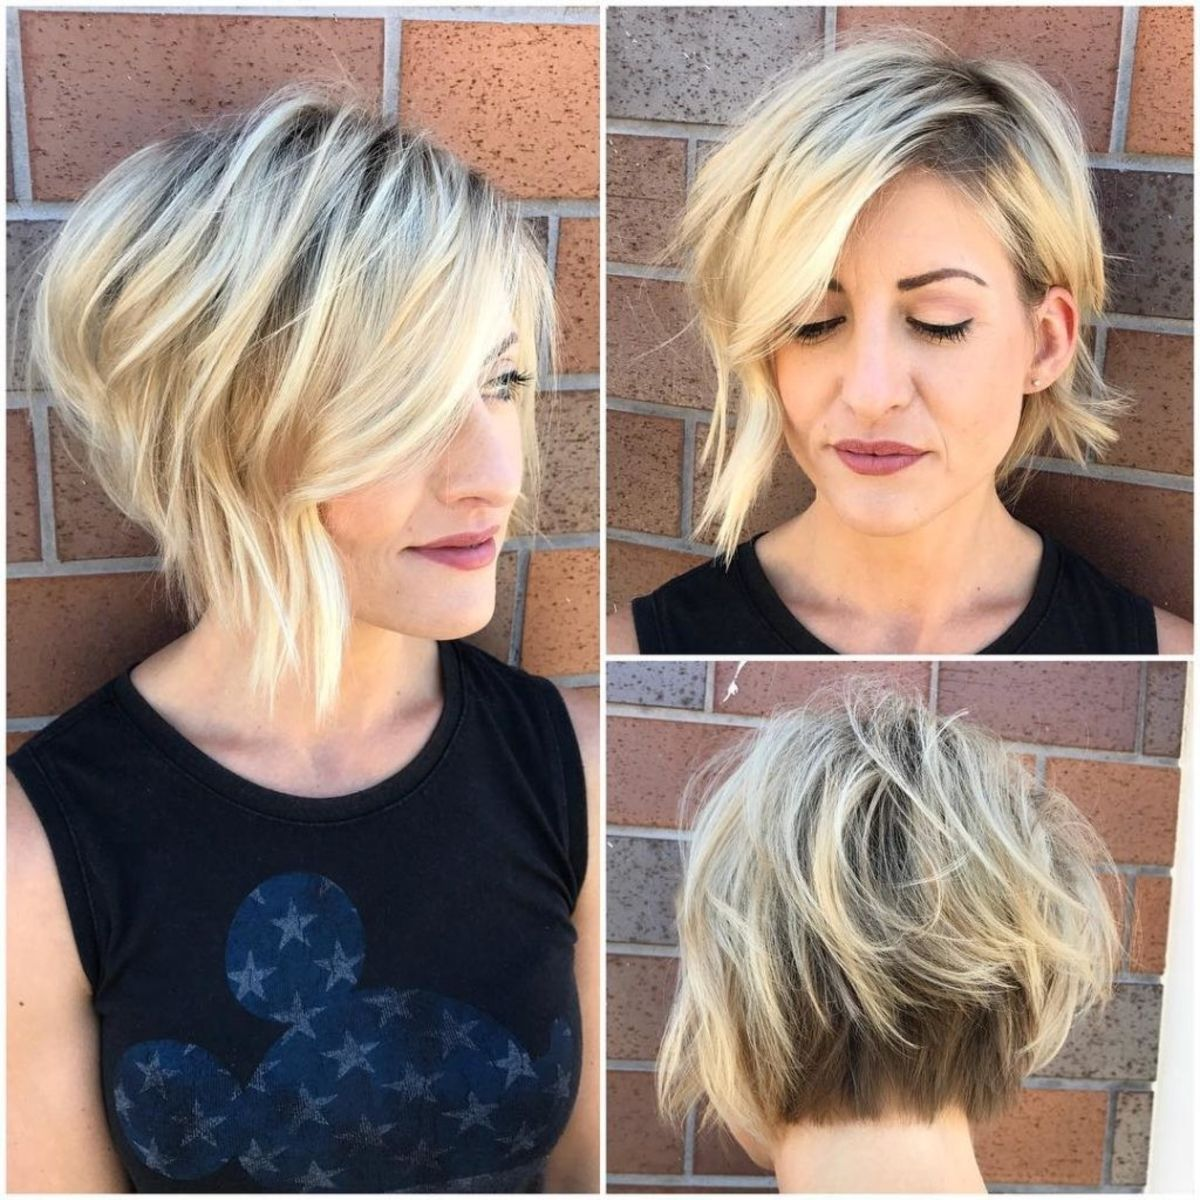 30 Modern Hairstyles For Women Over 30 That Will Make You Look Younger And Feel Fabulous Short Hair With Layers Short Messy Haircuts Hair Styles